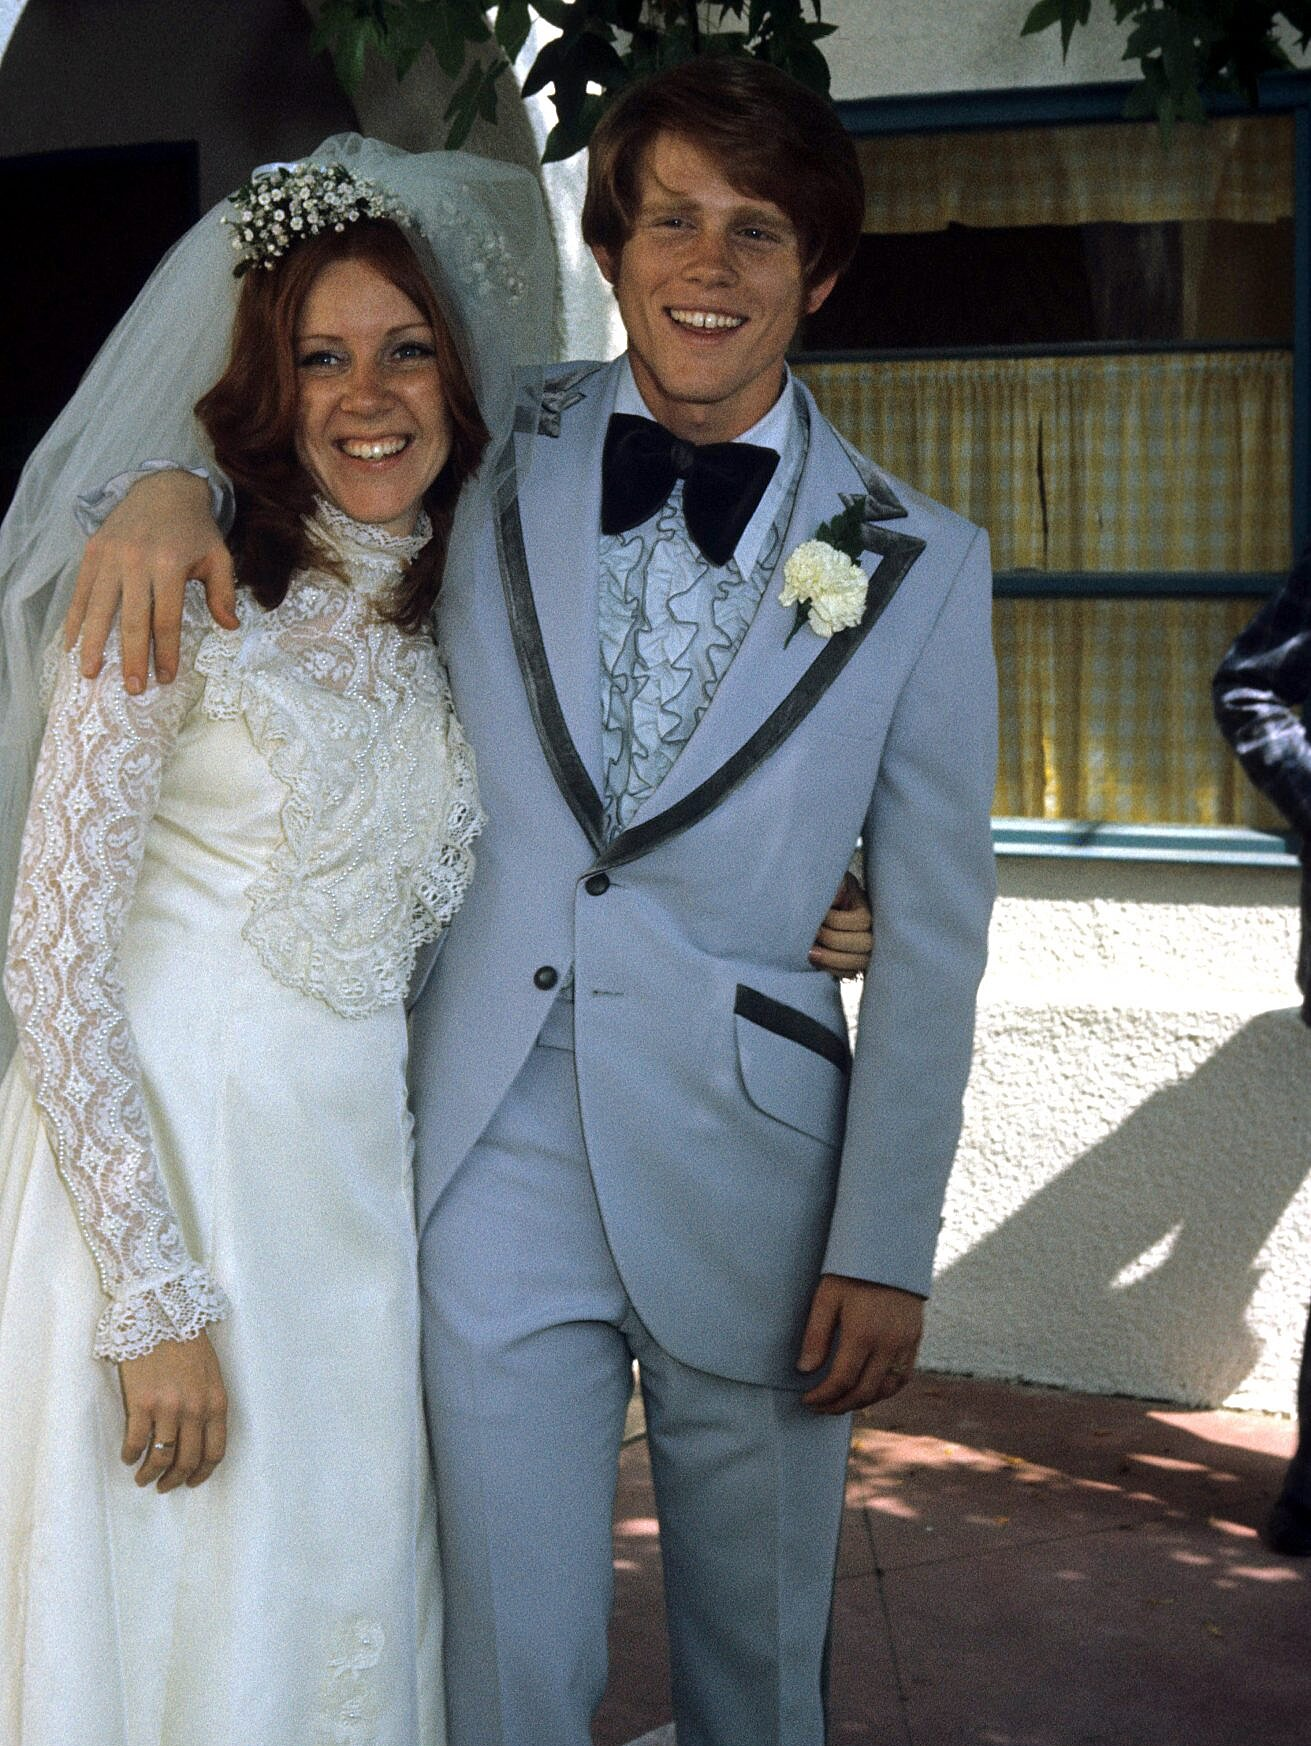 Ron Howard from 'Happy Days' Is a Proud Father of Four Children and Two of Whom Followed His Path.